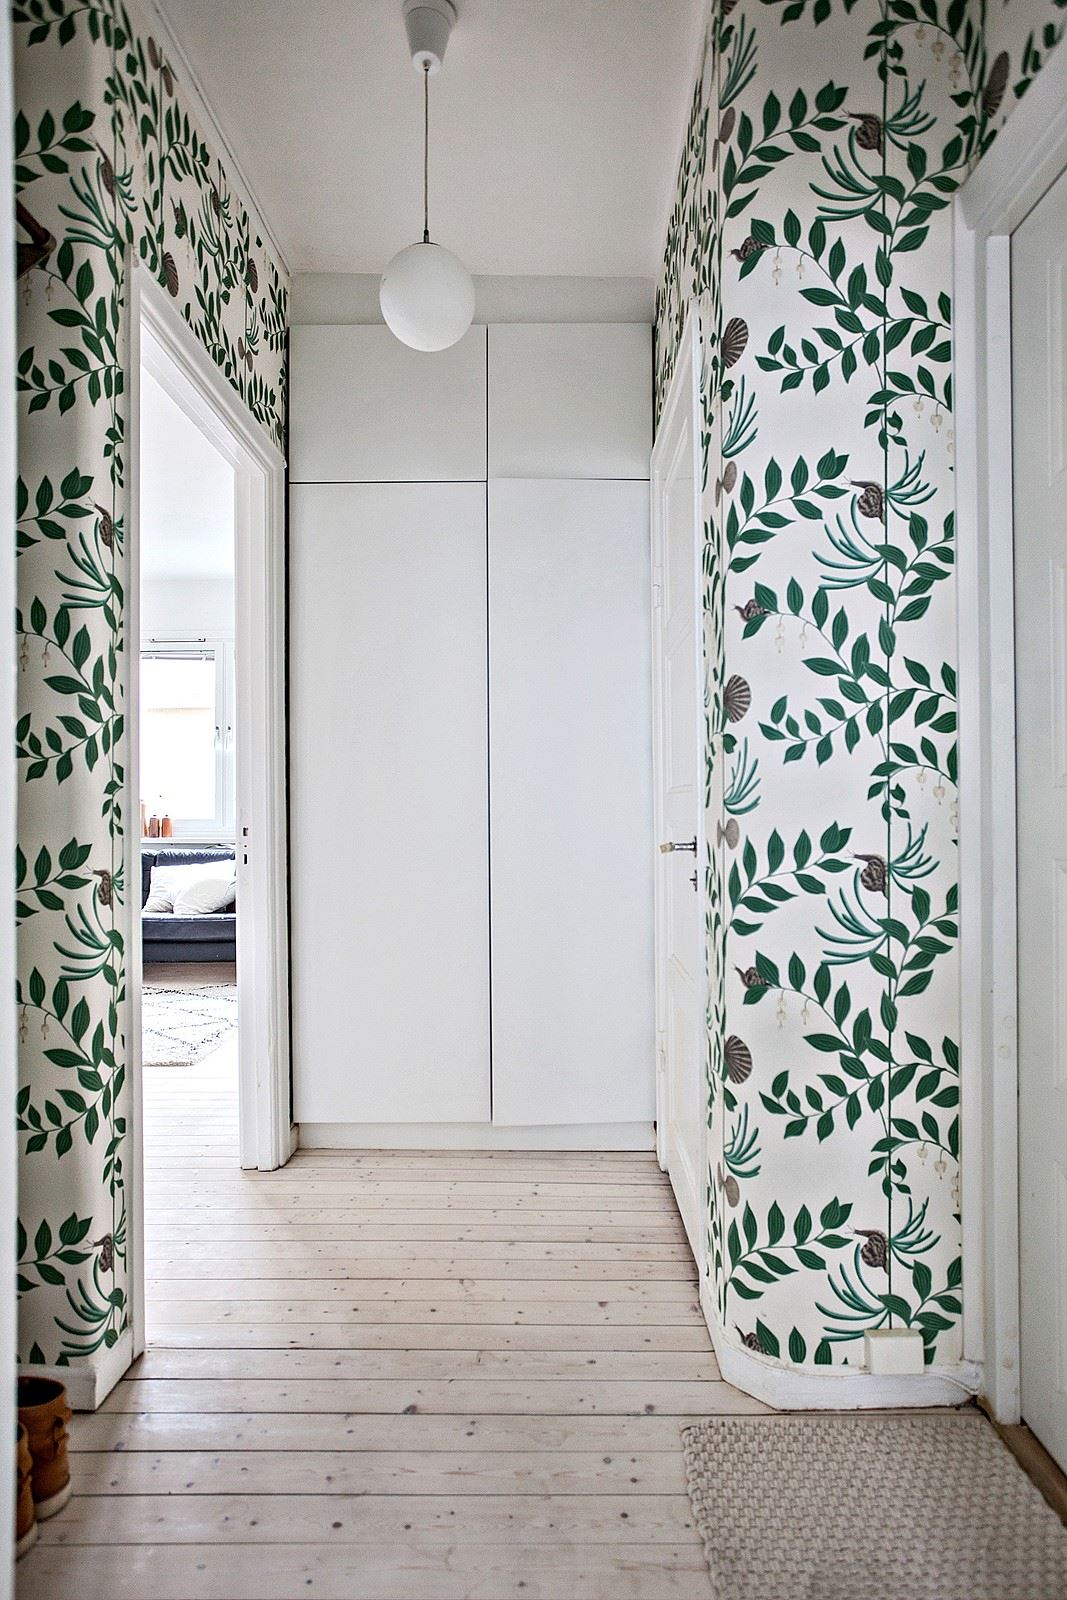 Foyer Wallpaper List : Foyer foliage wallpaper cococozy